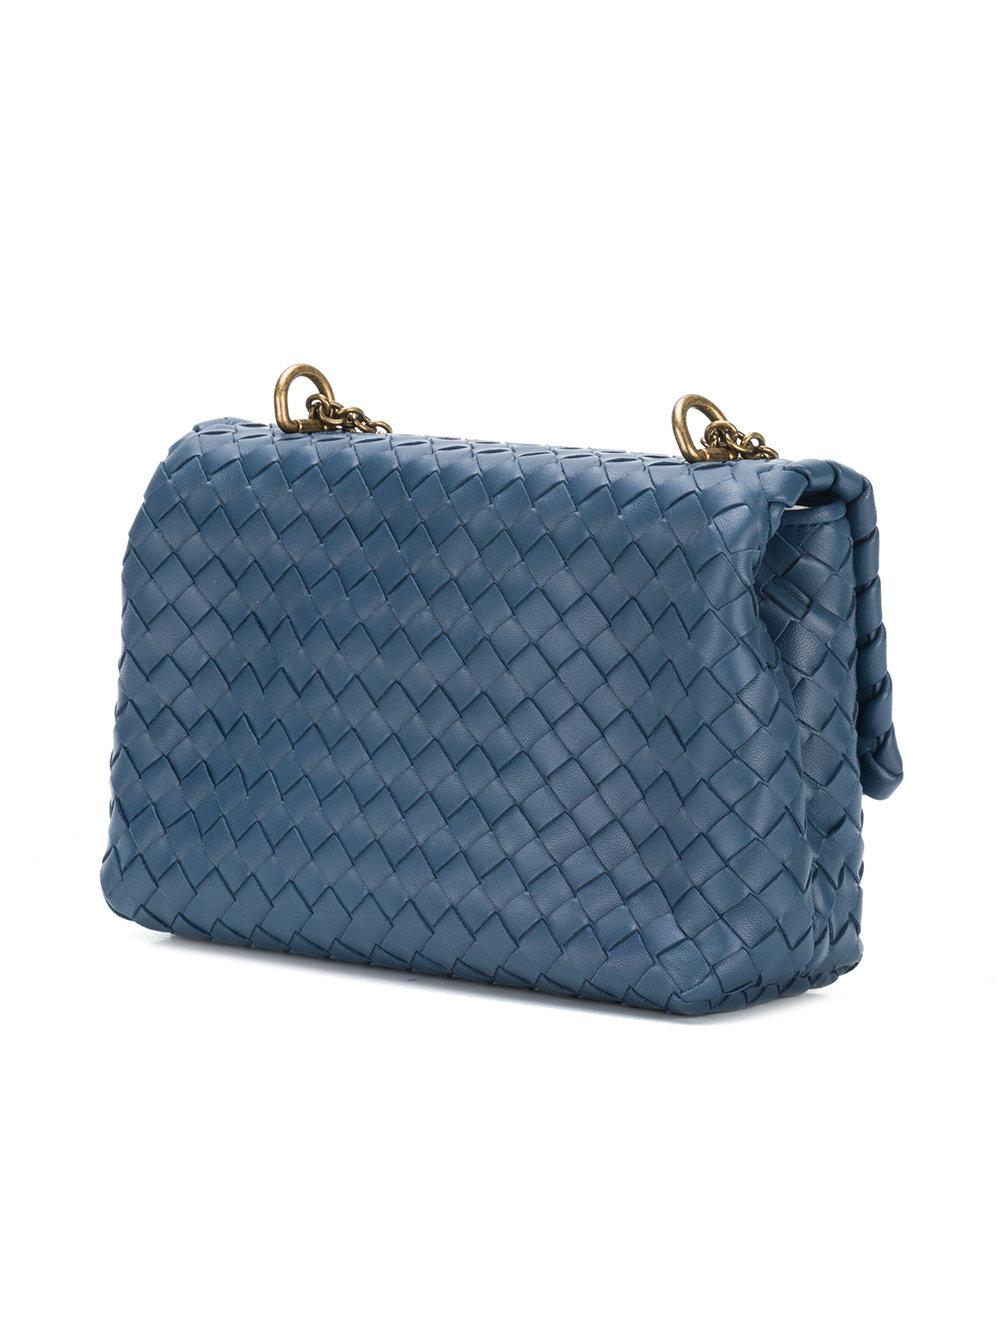 010b1fef47b9 Lyst - Bottega Veneta Olympia Intrecciato Crossbody Bag in Blue